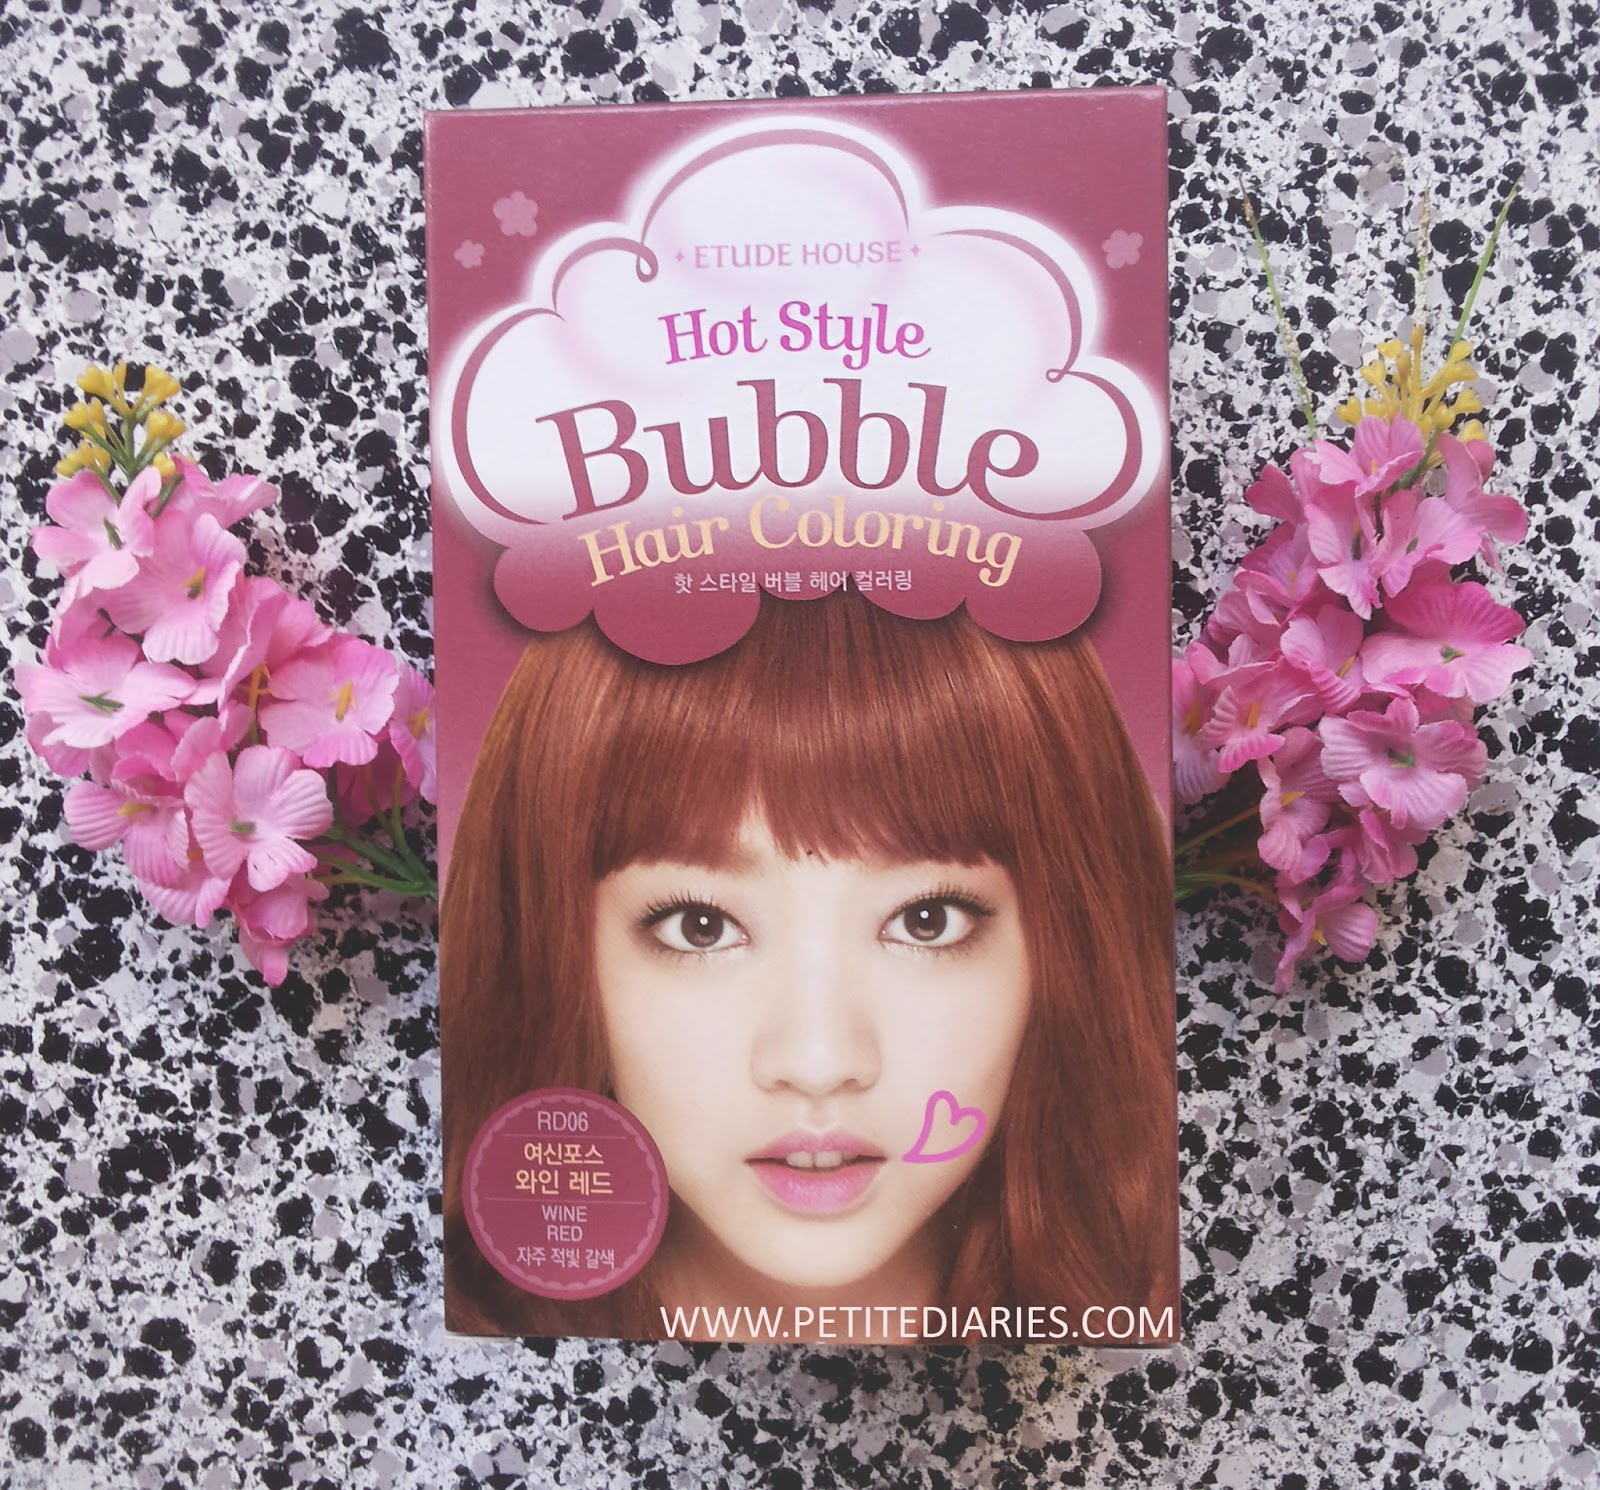 Review Etude House Hot Style Bubble Hair Coloring In Rd06 Wine Red Petite Diaries